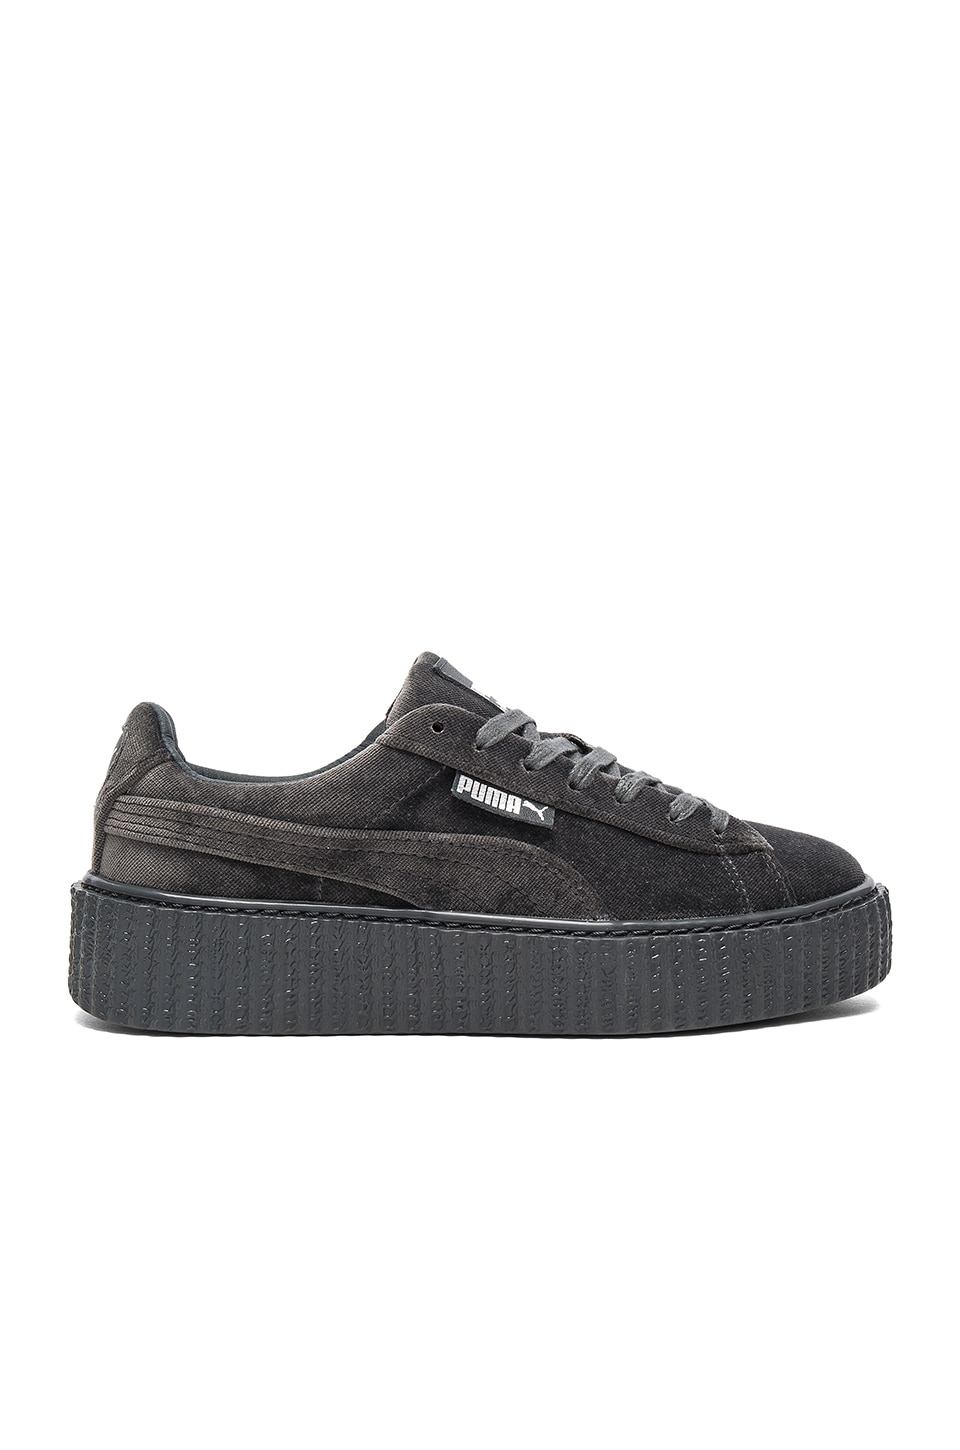 Puma x Rihanna Velvet Creeper in Glacier Gray